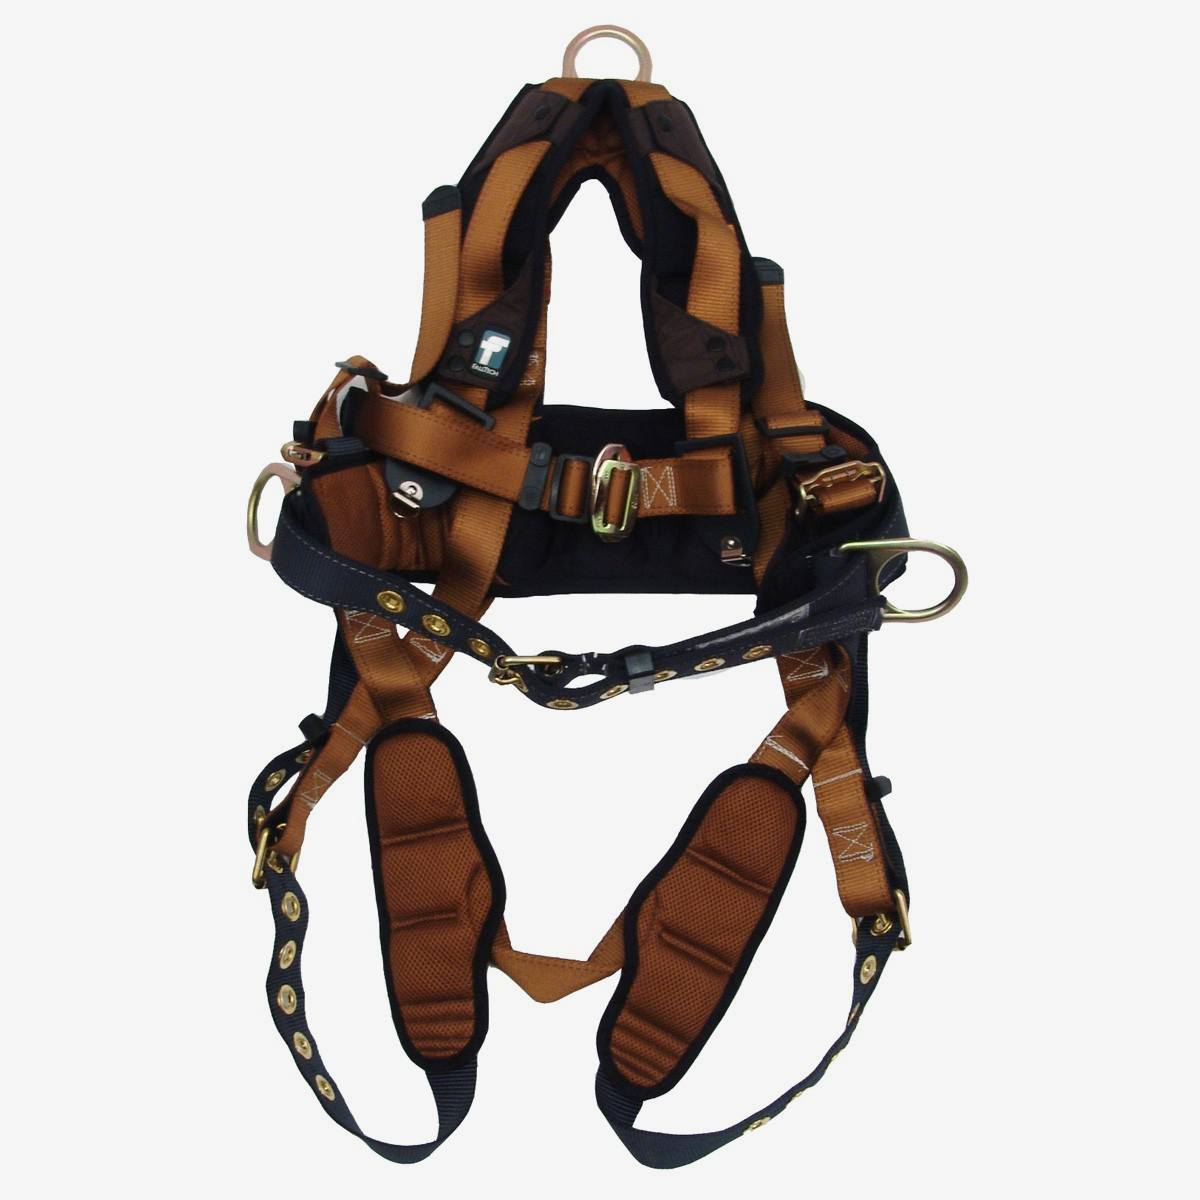 Ergodyne FallTech Safety Harness 1 D Ring with Tongue Buckles